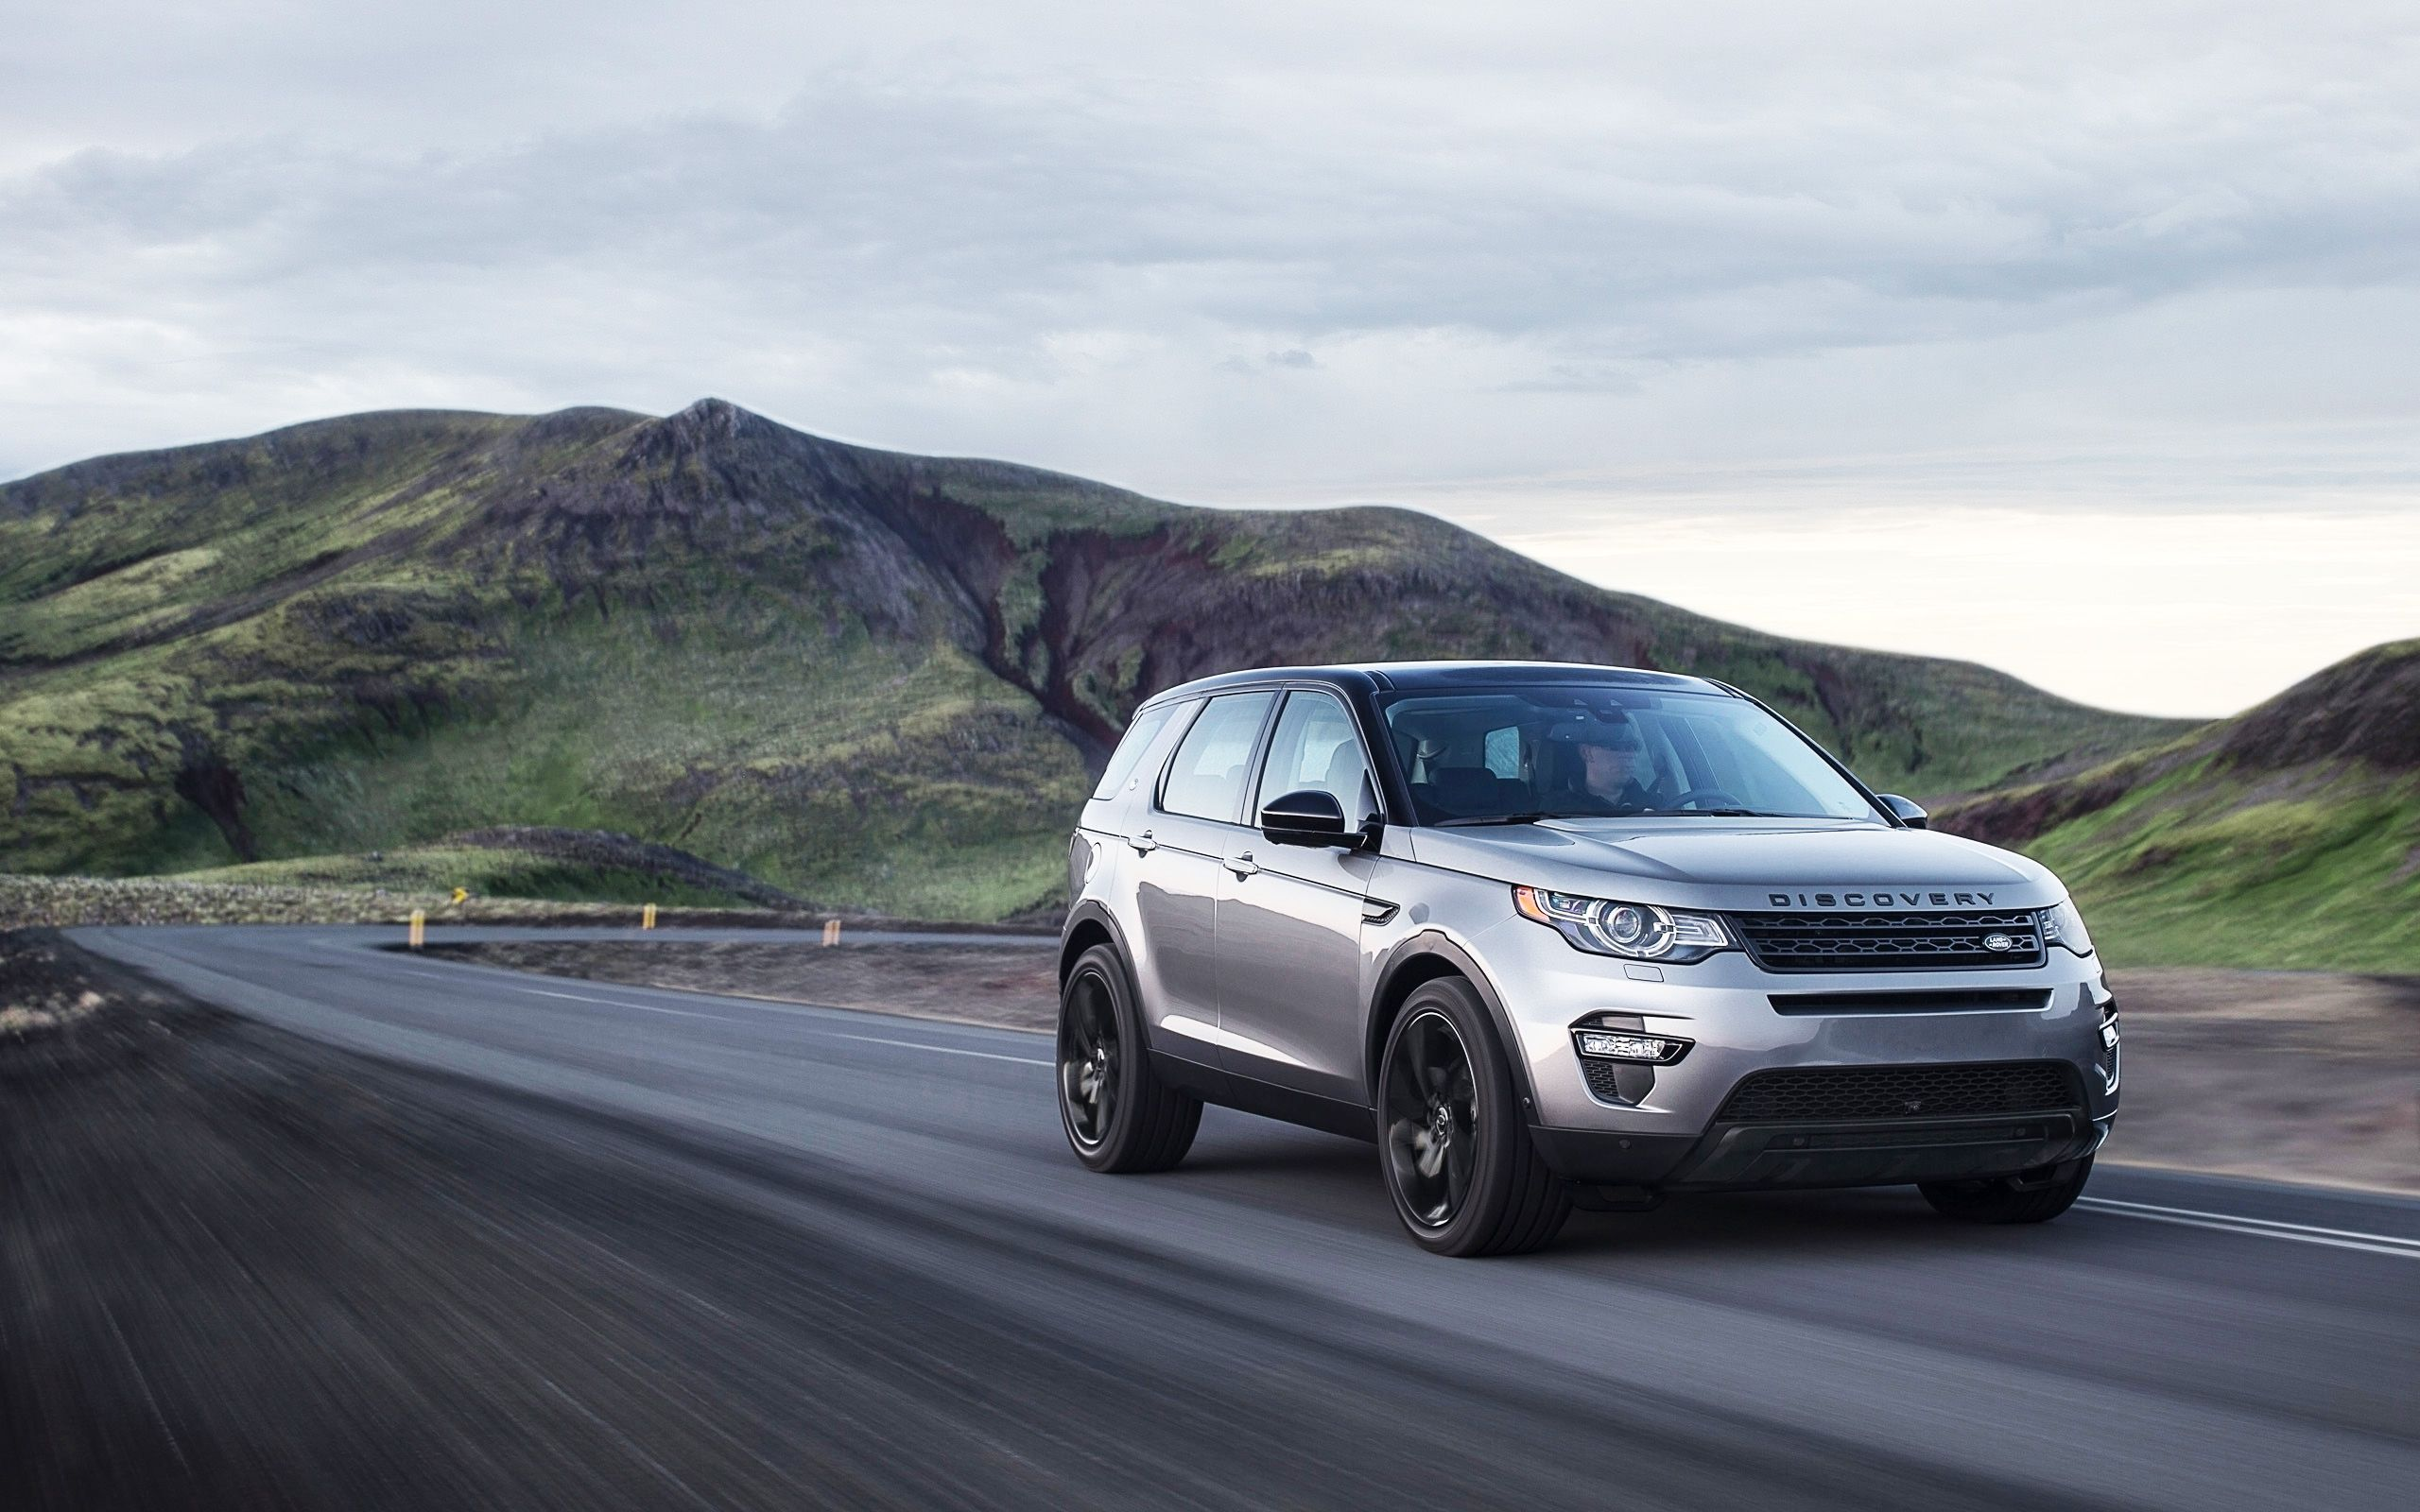 Best 25 new land rover discovery ideas only on pinterest new land rover new suv 2017 and suv trucks